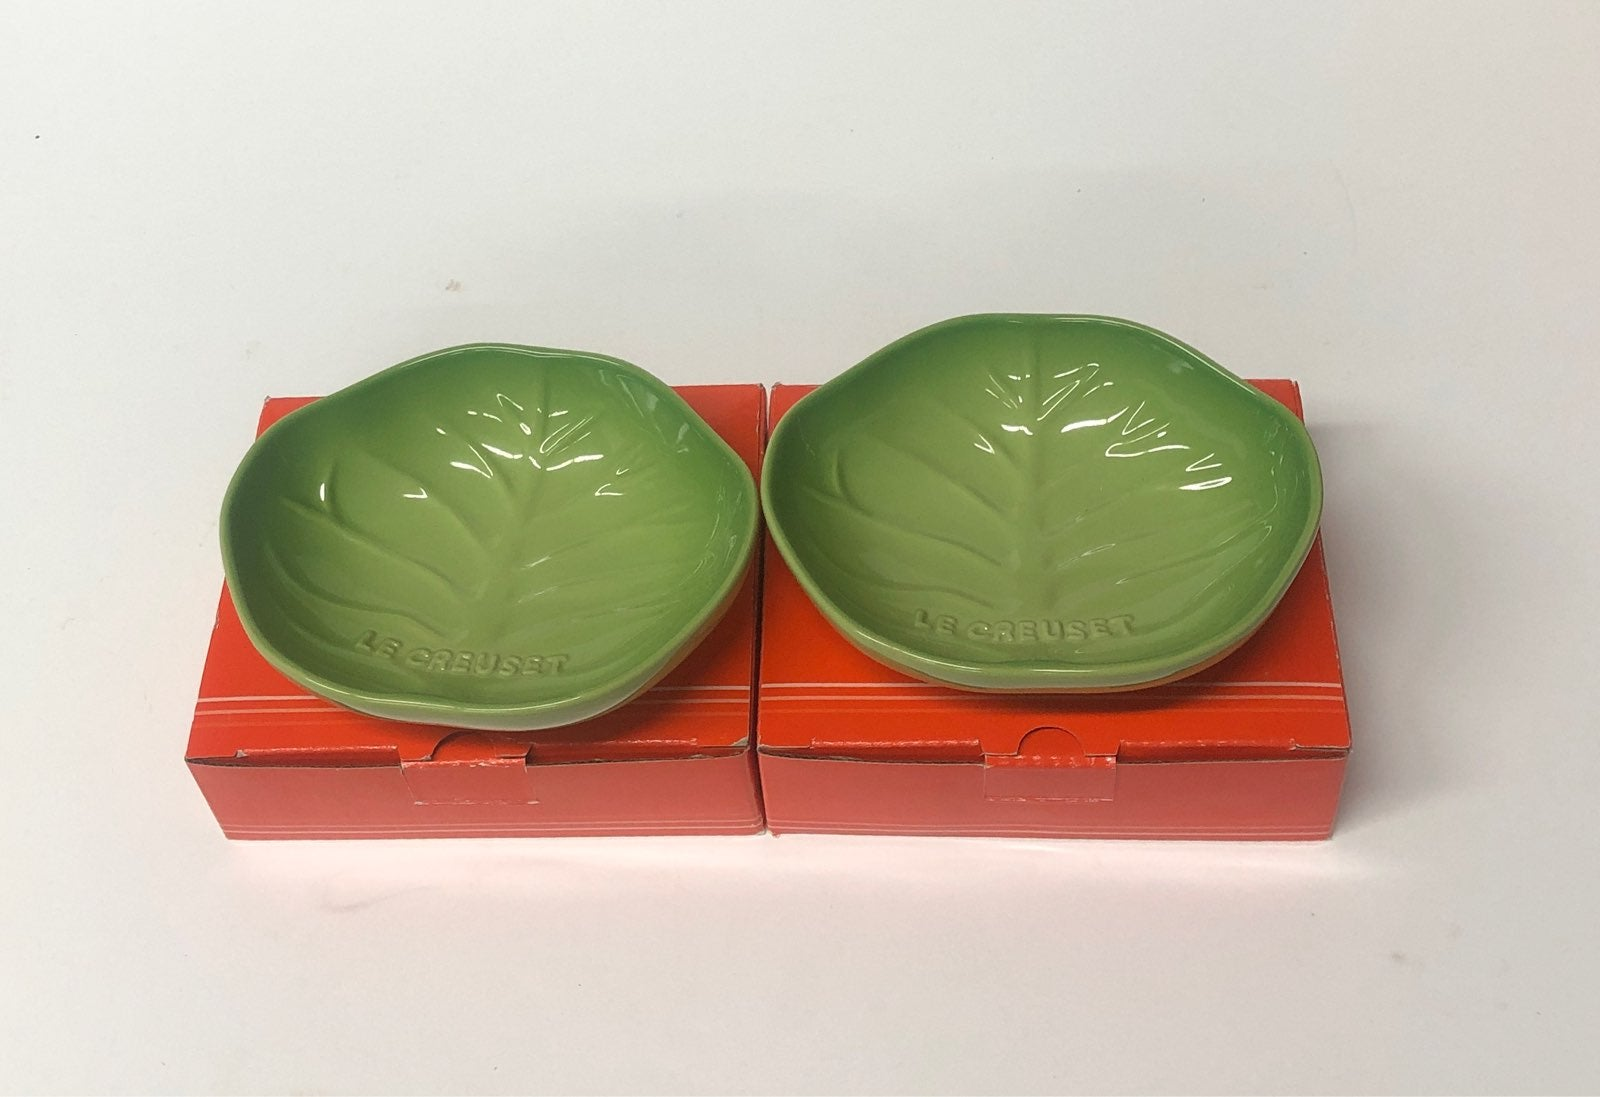 Le Creuset Rare Small Cabbage Dishes